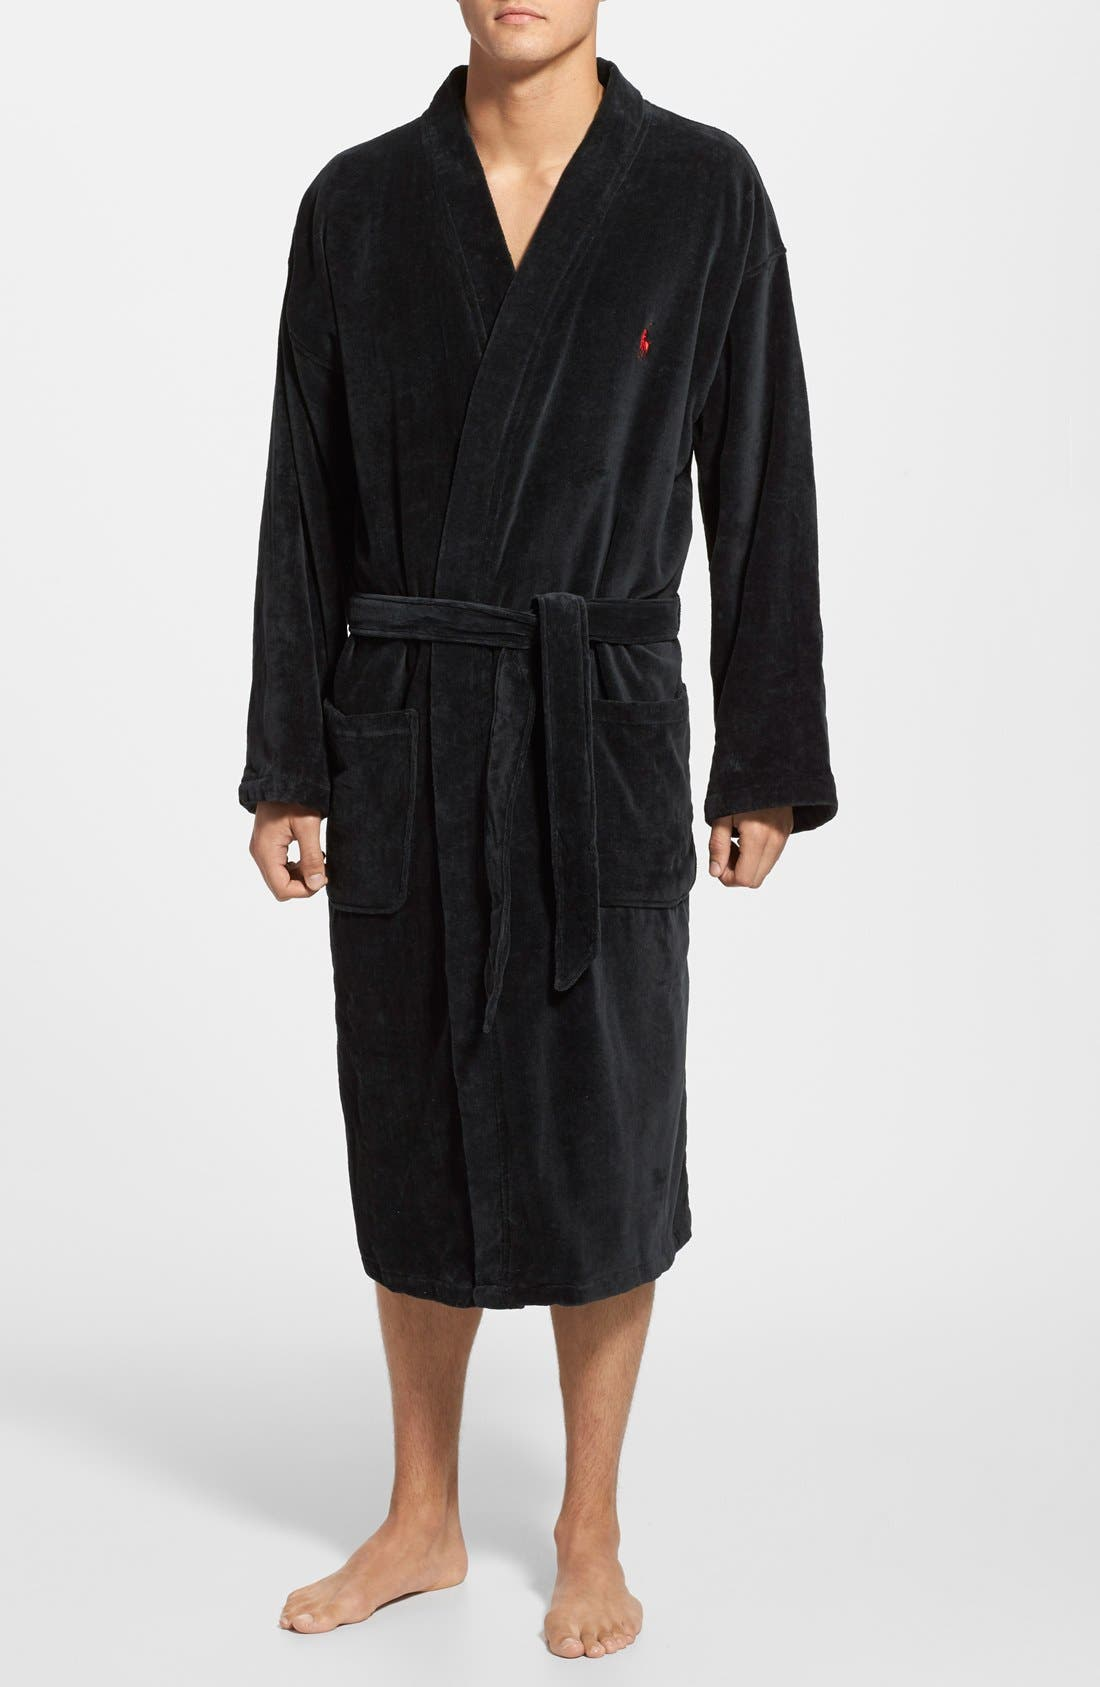 Alternate Image 1 Selected - Polo Ralph Lauren Velour Kimono Robe